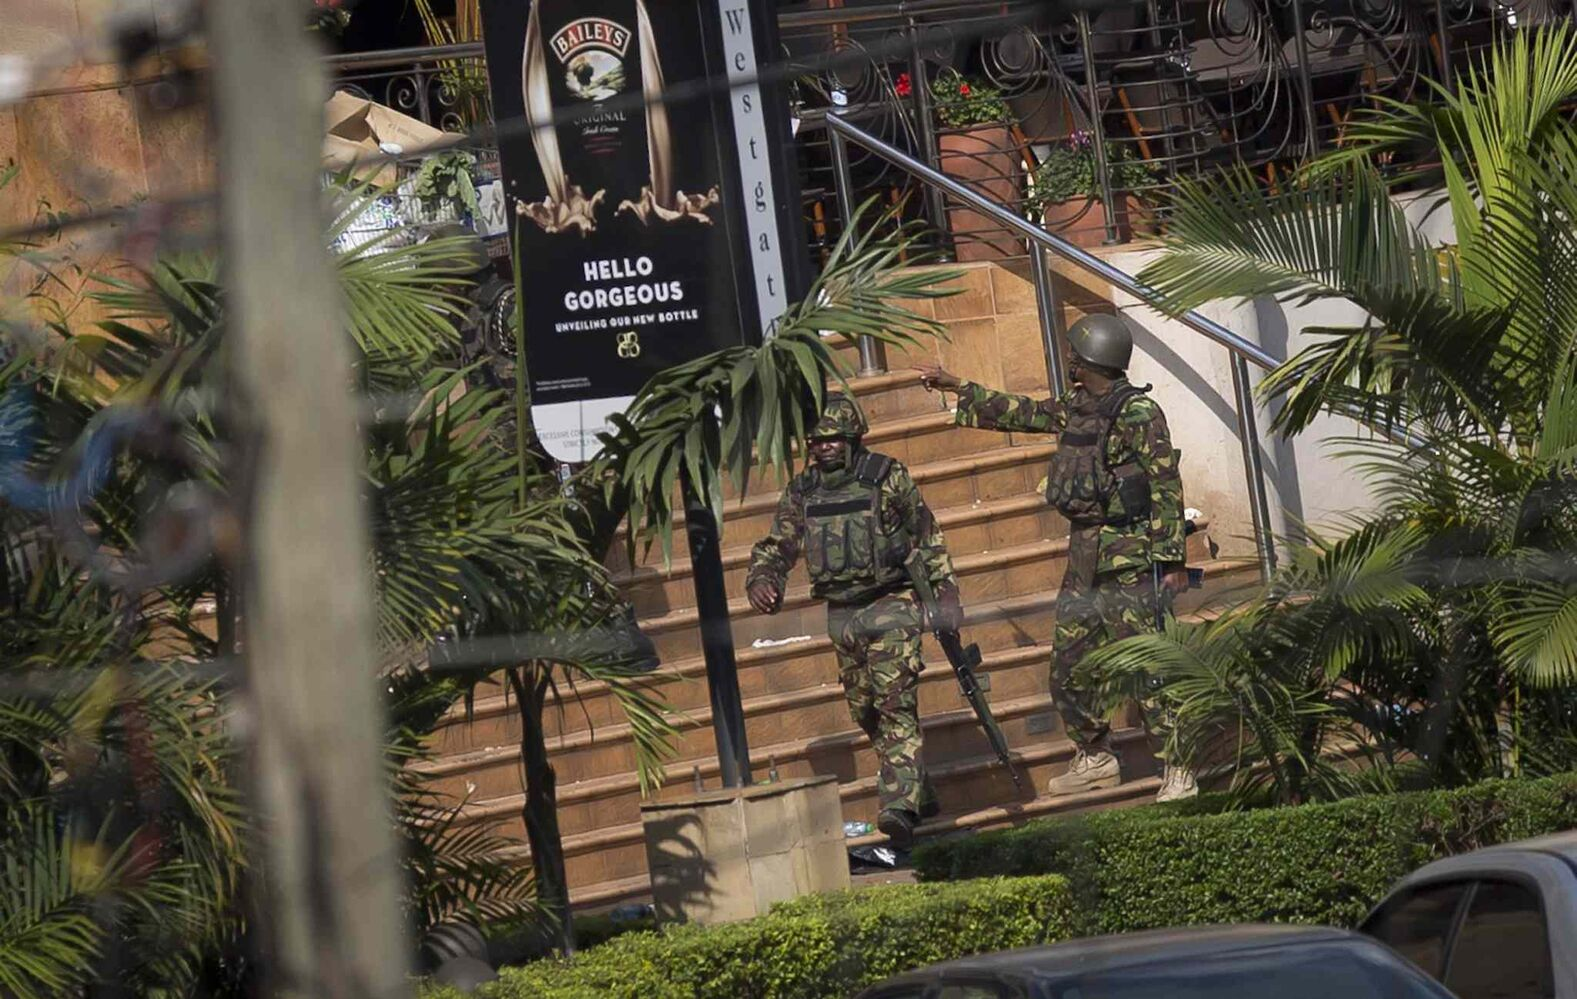 Soldiers from the Kenya Defence Forces walk out, following the sound of explosions and gunfire, from the Westgate Mall in Nairobi, Kenya, Sunday. Kenyan military forces engaged in sporadic gun battles Sunday with the Islamic extremists holding an unknown number of hostages inside an upscale Nairobi mall, as officials said the death toll from a grenade-and-gunfire siege a day earlier rose to 59, with at least 175 wounded.